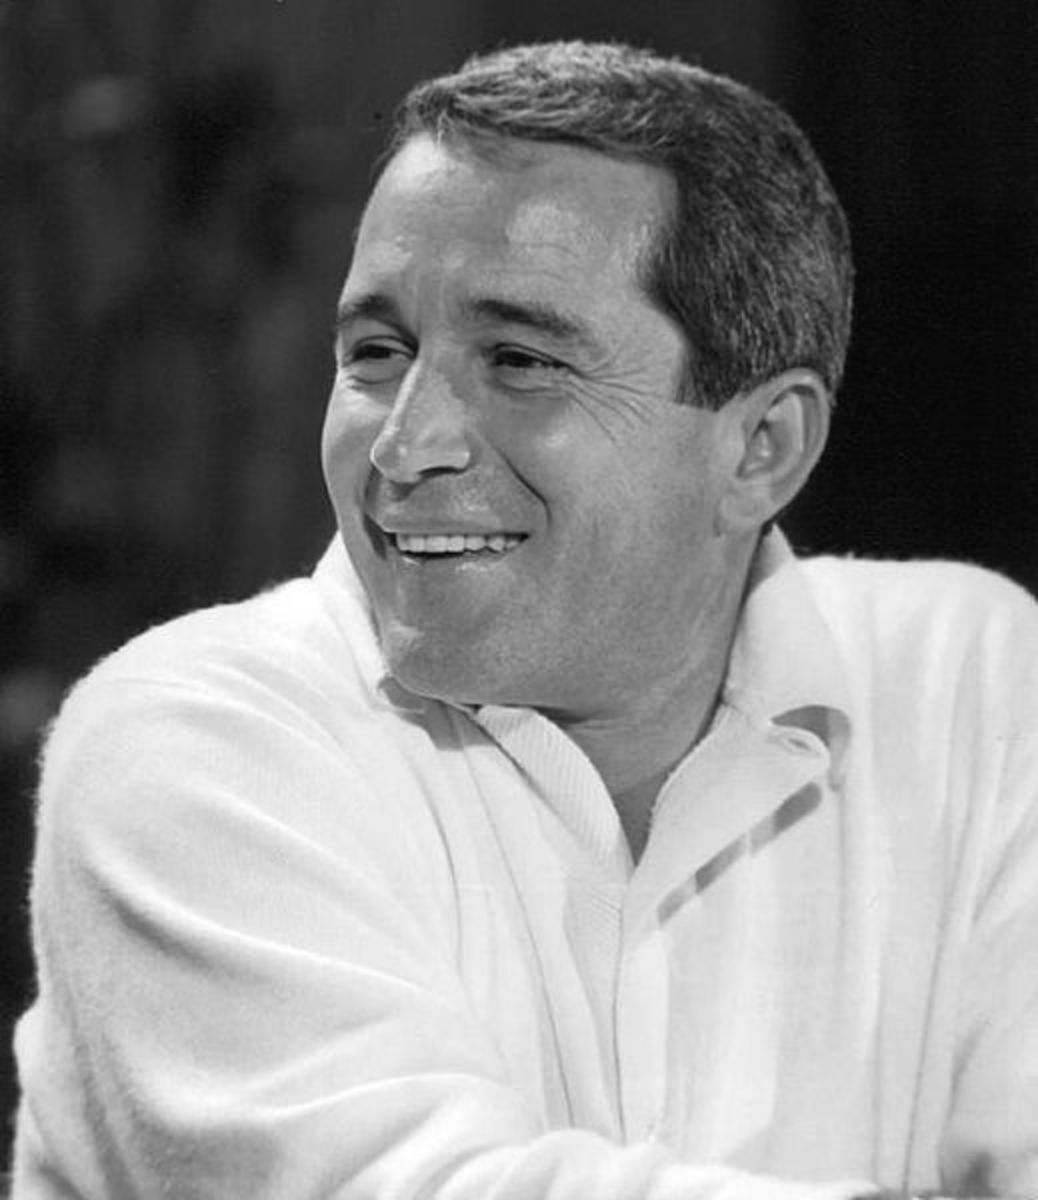 My hero, Perry Como. And notice what he is wearing.